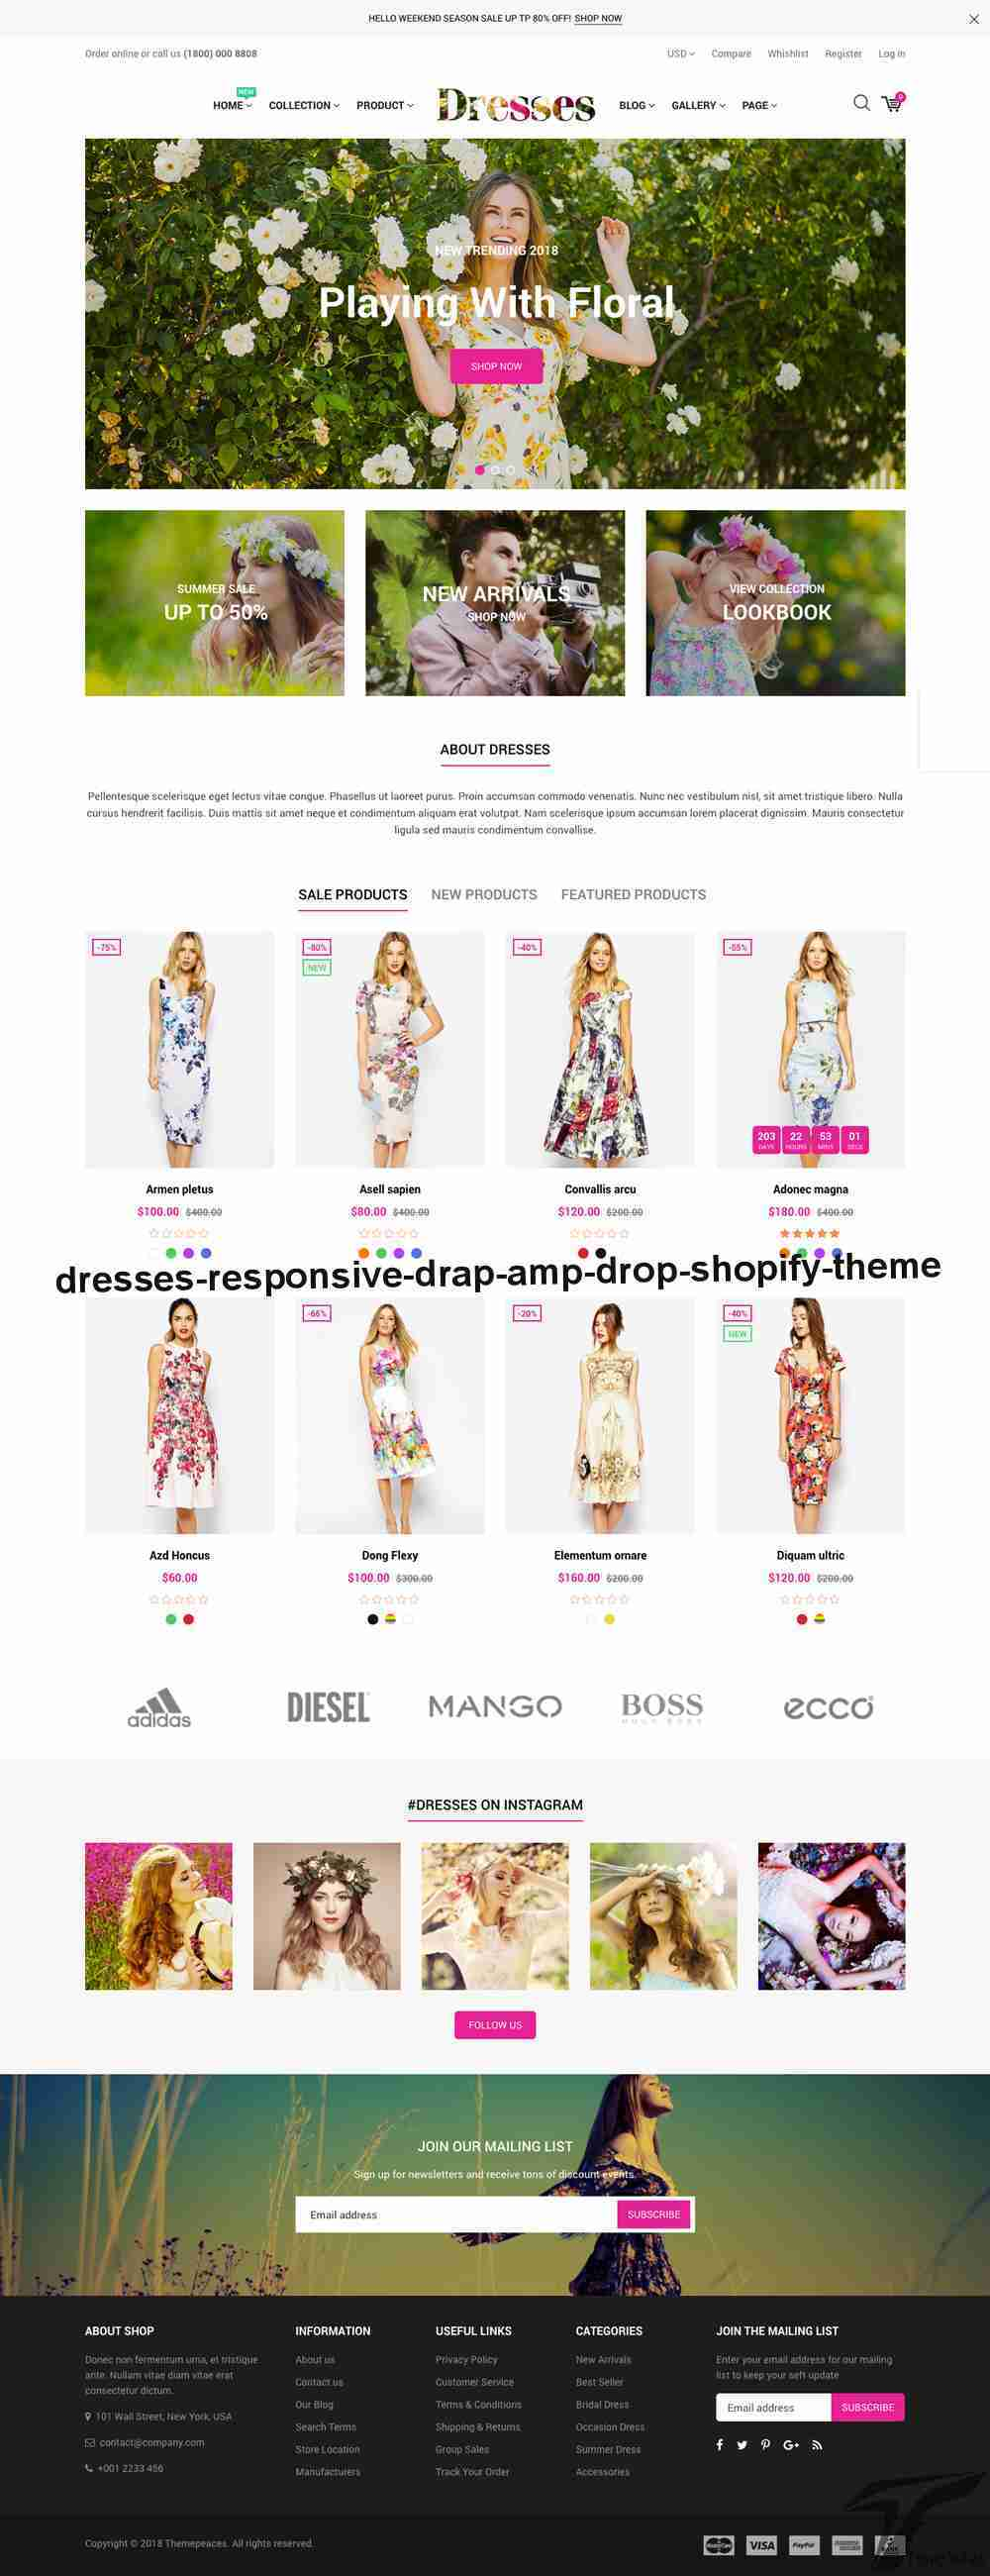 https://images.besthemes.com/images/h1_dresses-responsive-drap-amp-drop-shopify-theme10-_-247969075/preview/10_preview_home_9.jpg